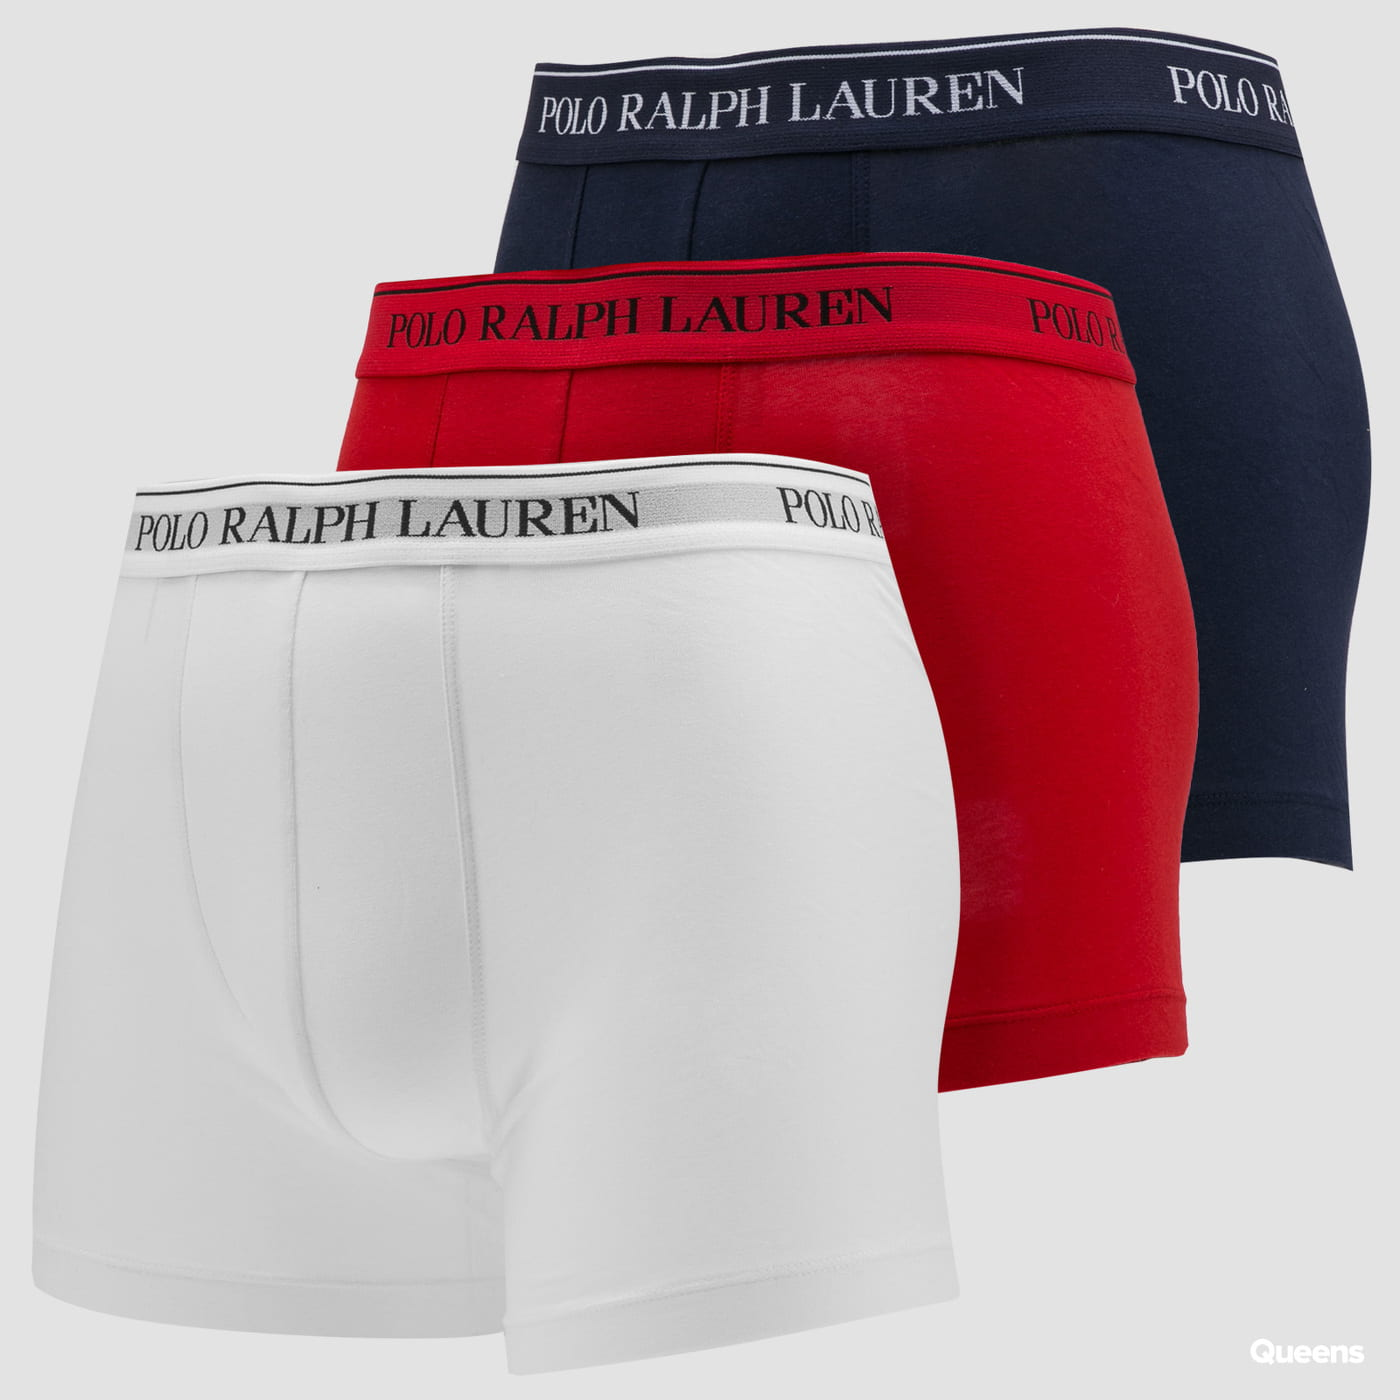 Polo Ralph Lauren 3Pack Stretch Cotton Classic Trunks C/O white / red / navy